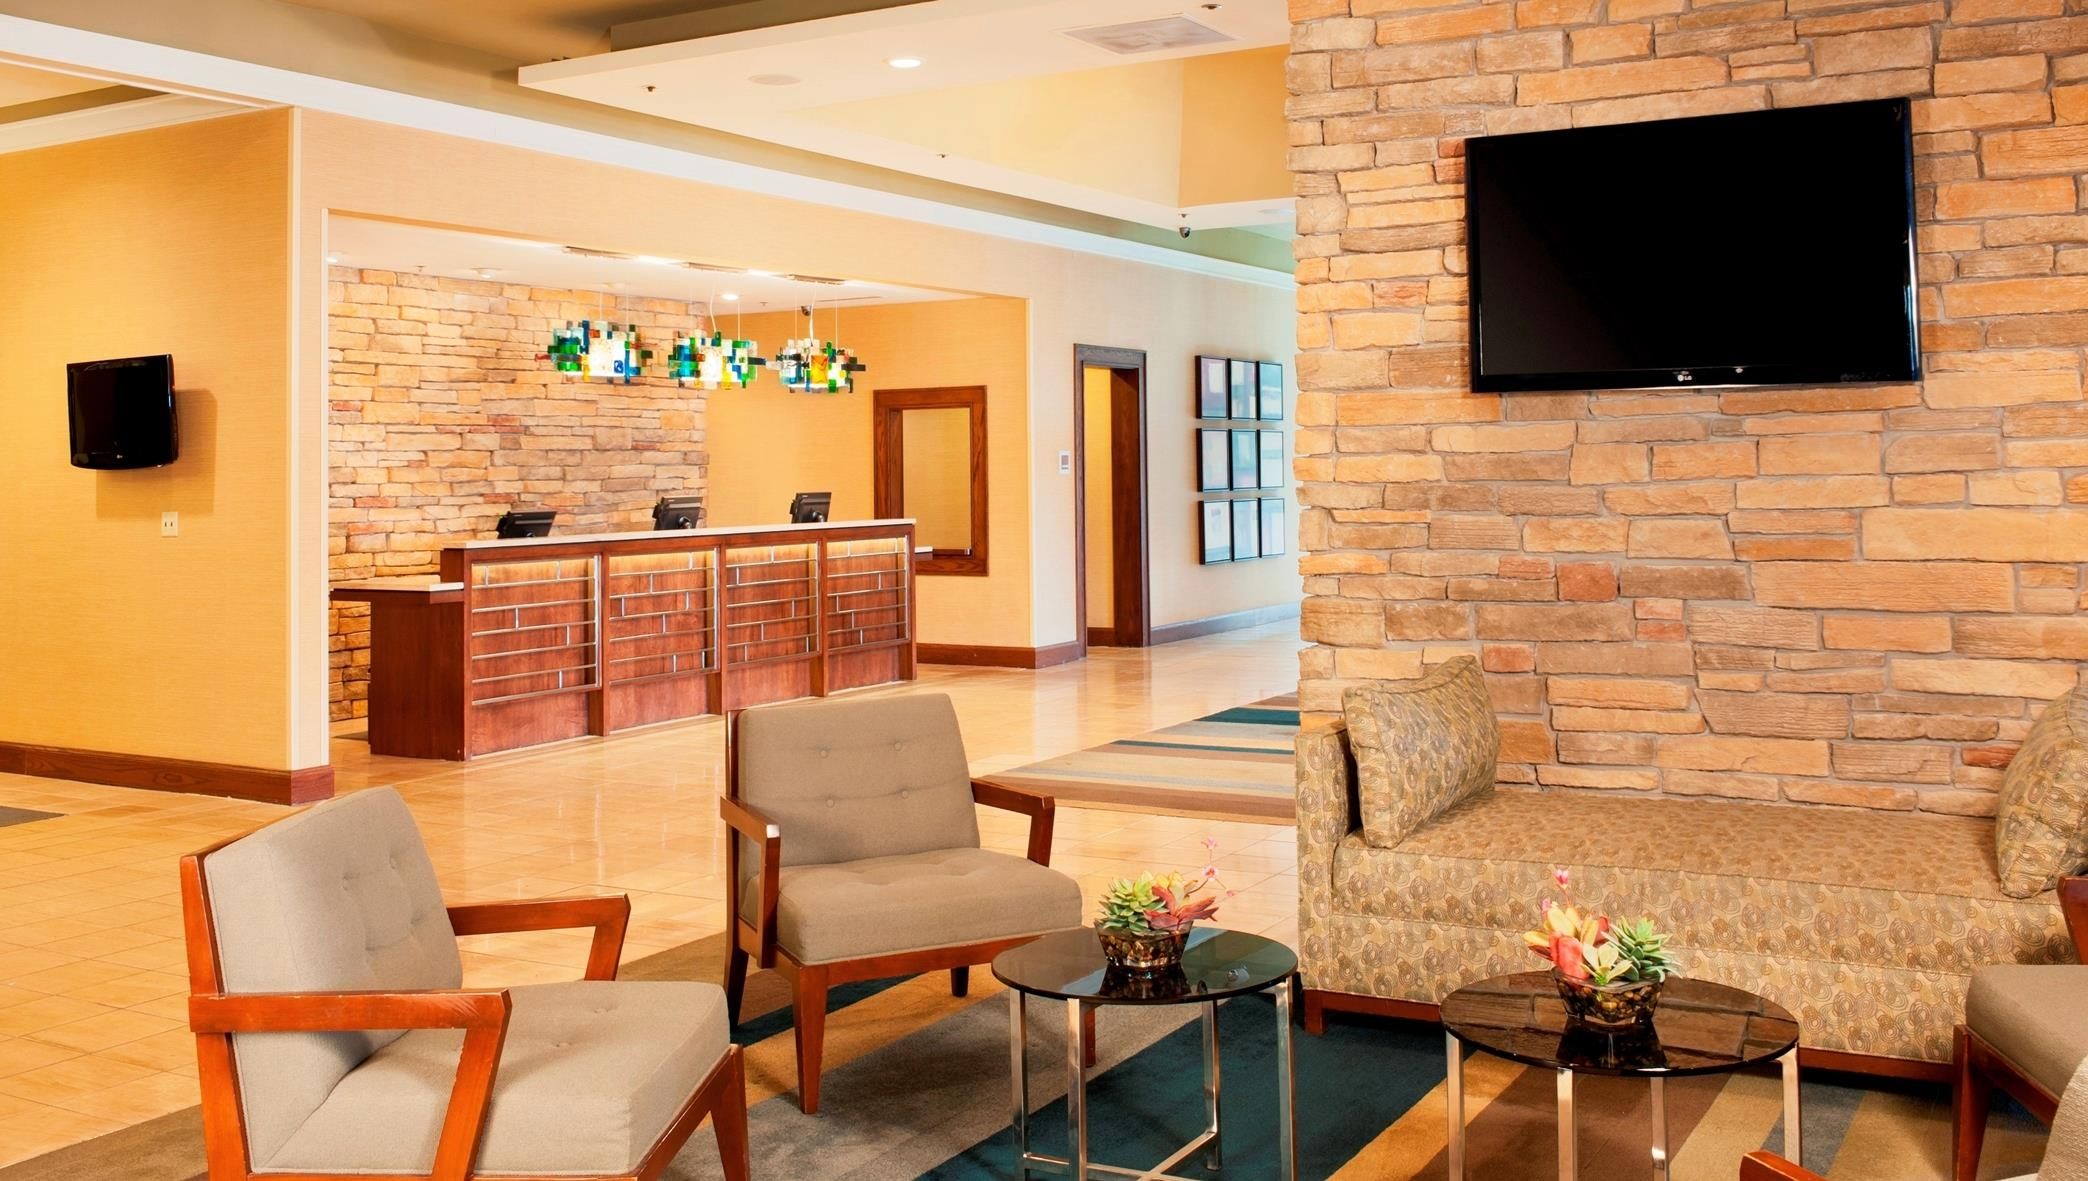 DoubleTree by Hilton Hotel Collinsville - St. Louis image 6